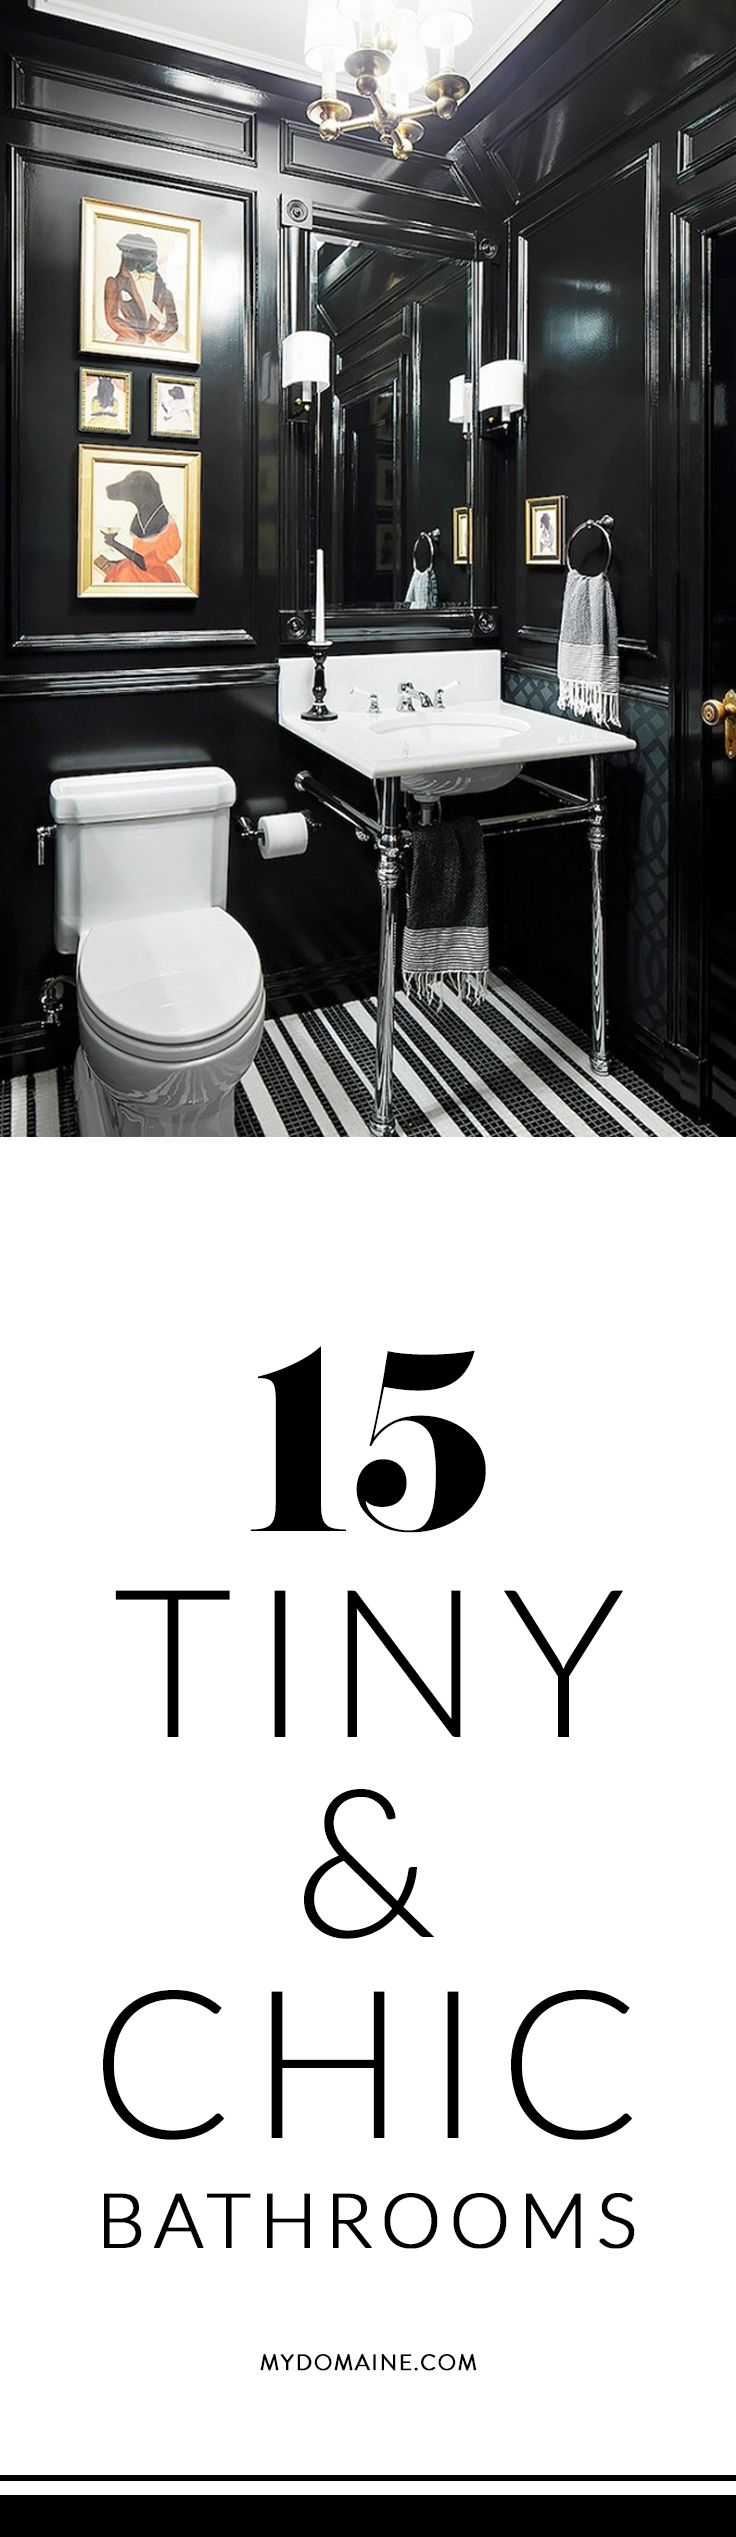 Bathroom Furniture : How to style a small bathroom - Decor Object ...